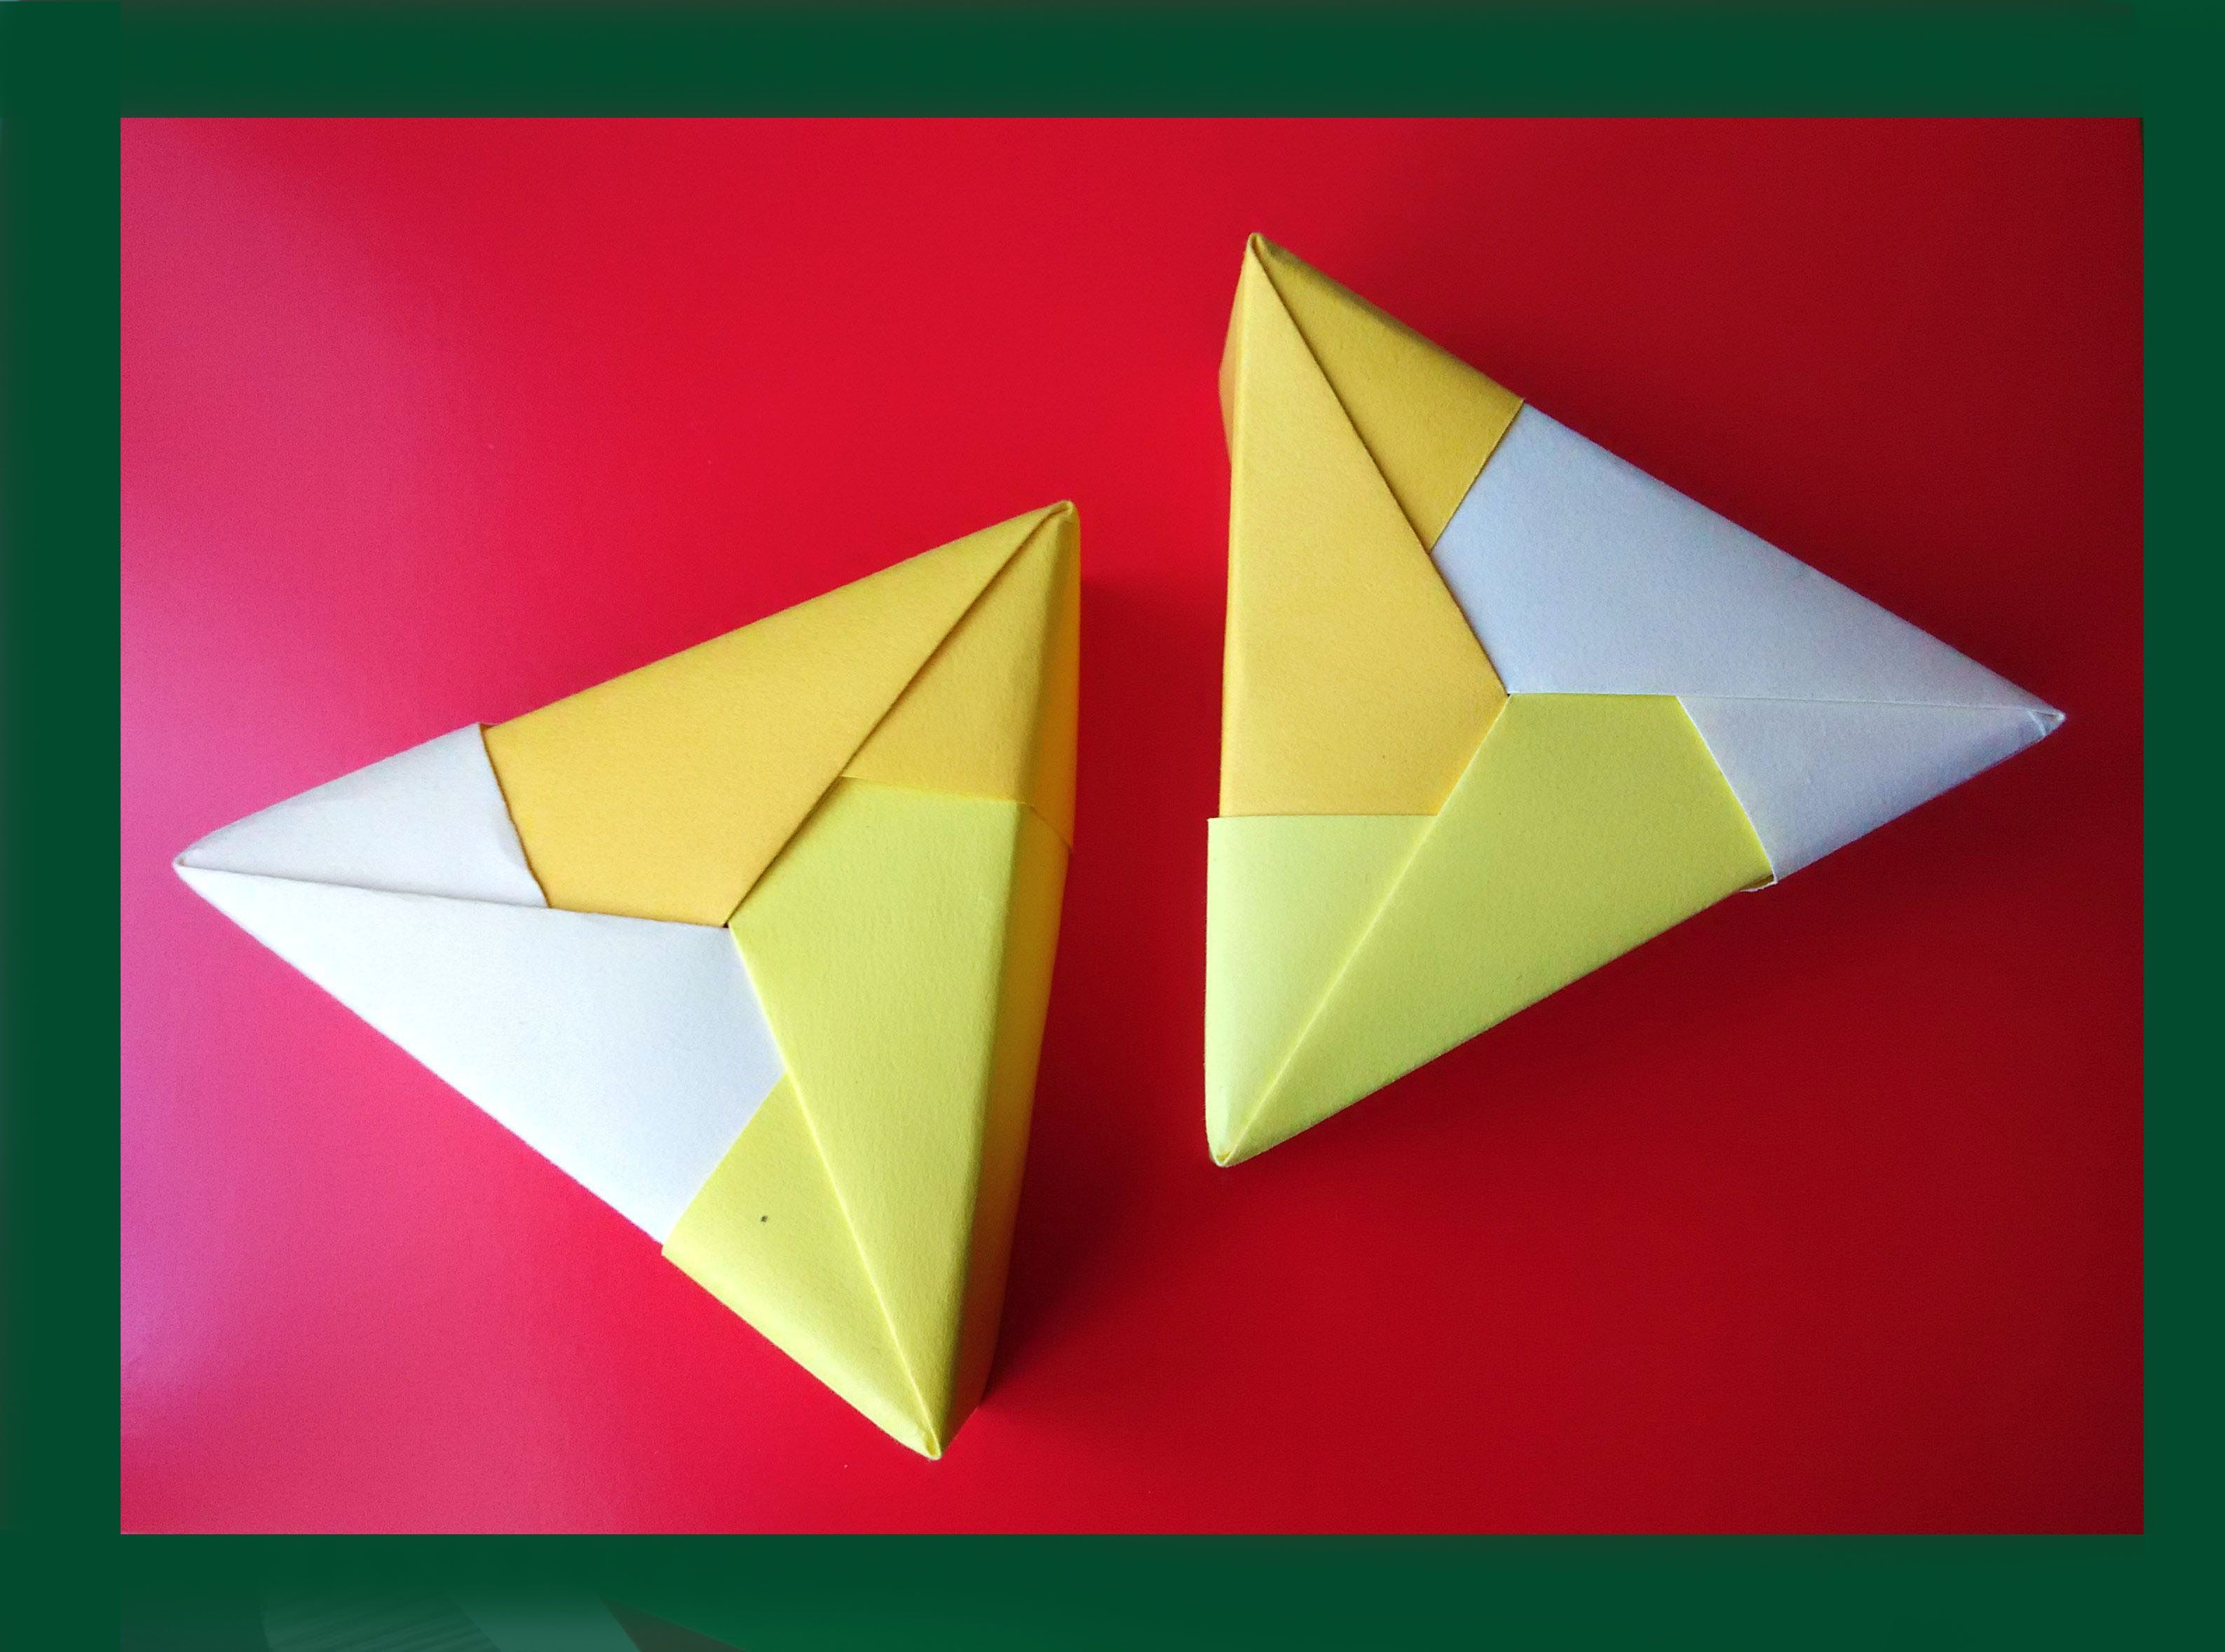 Easy origami triangle gift box ideas for gifts easy origami triangle gift box ideas for gifts jeuxipadfo Gallery